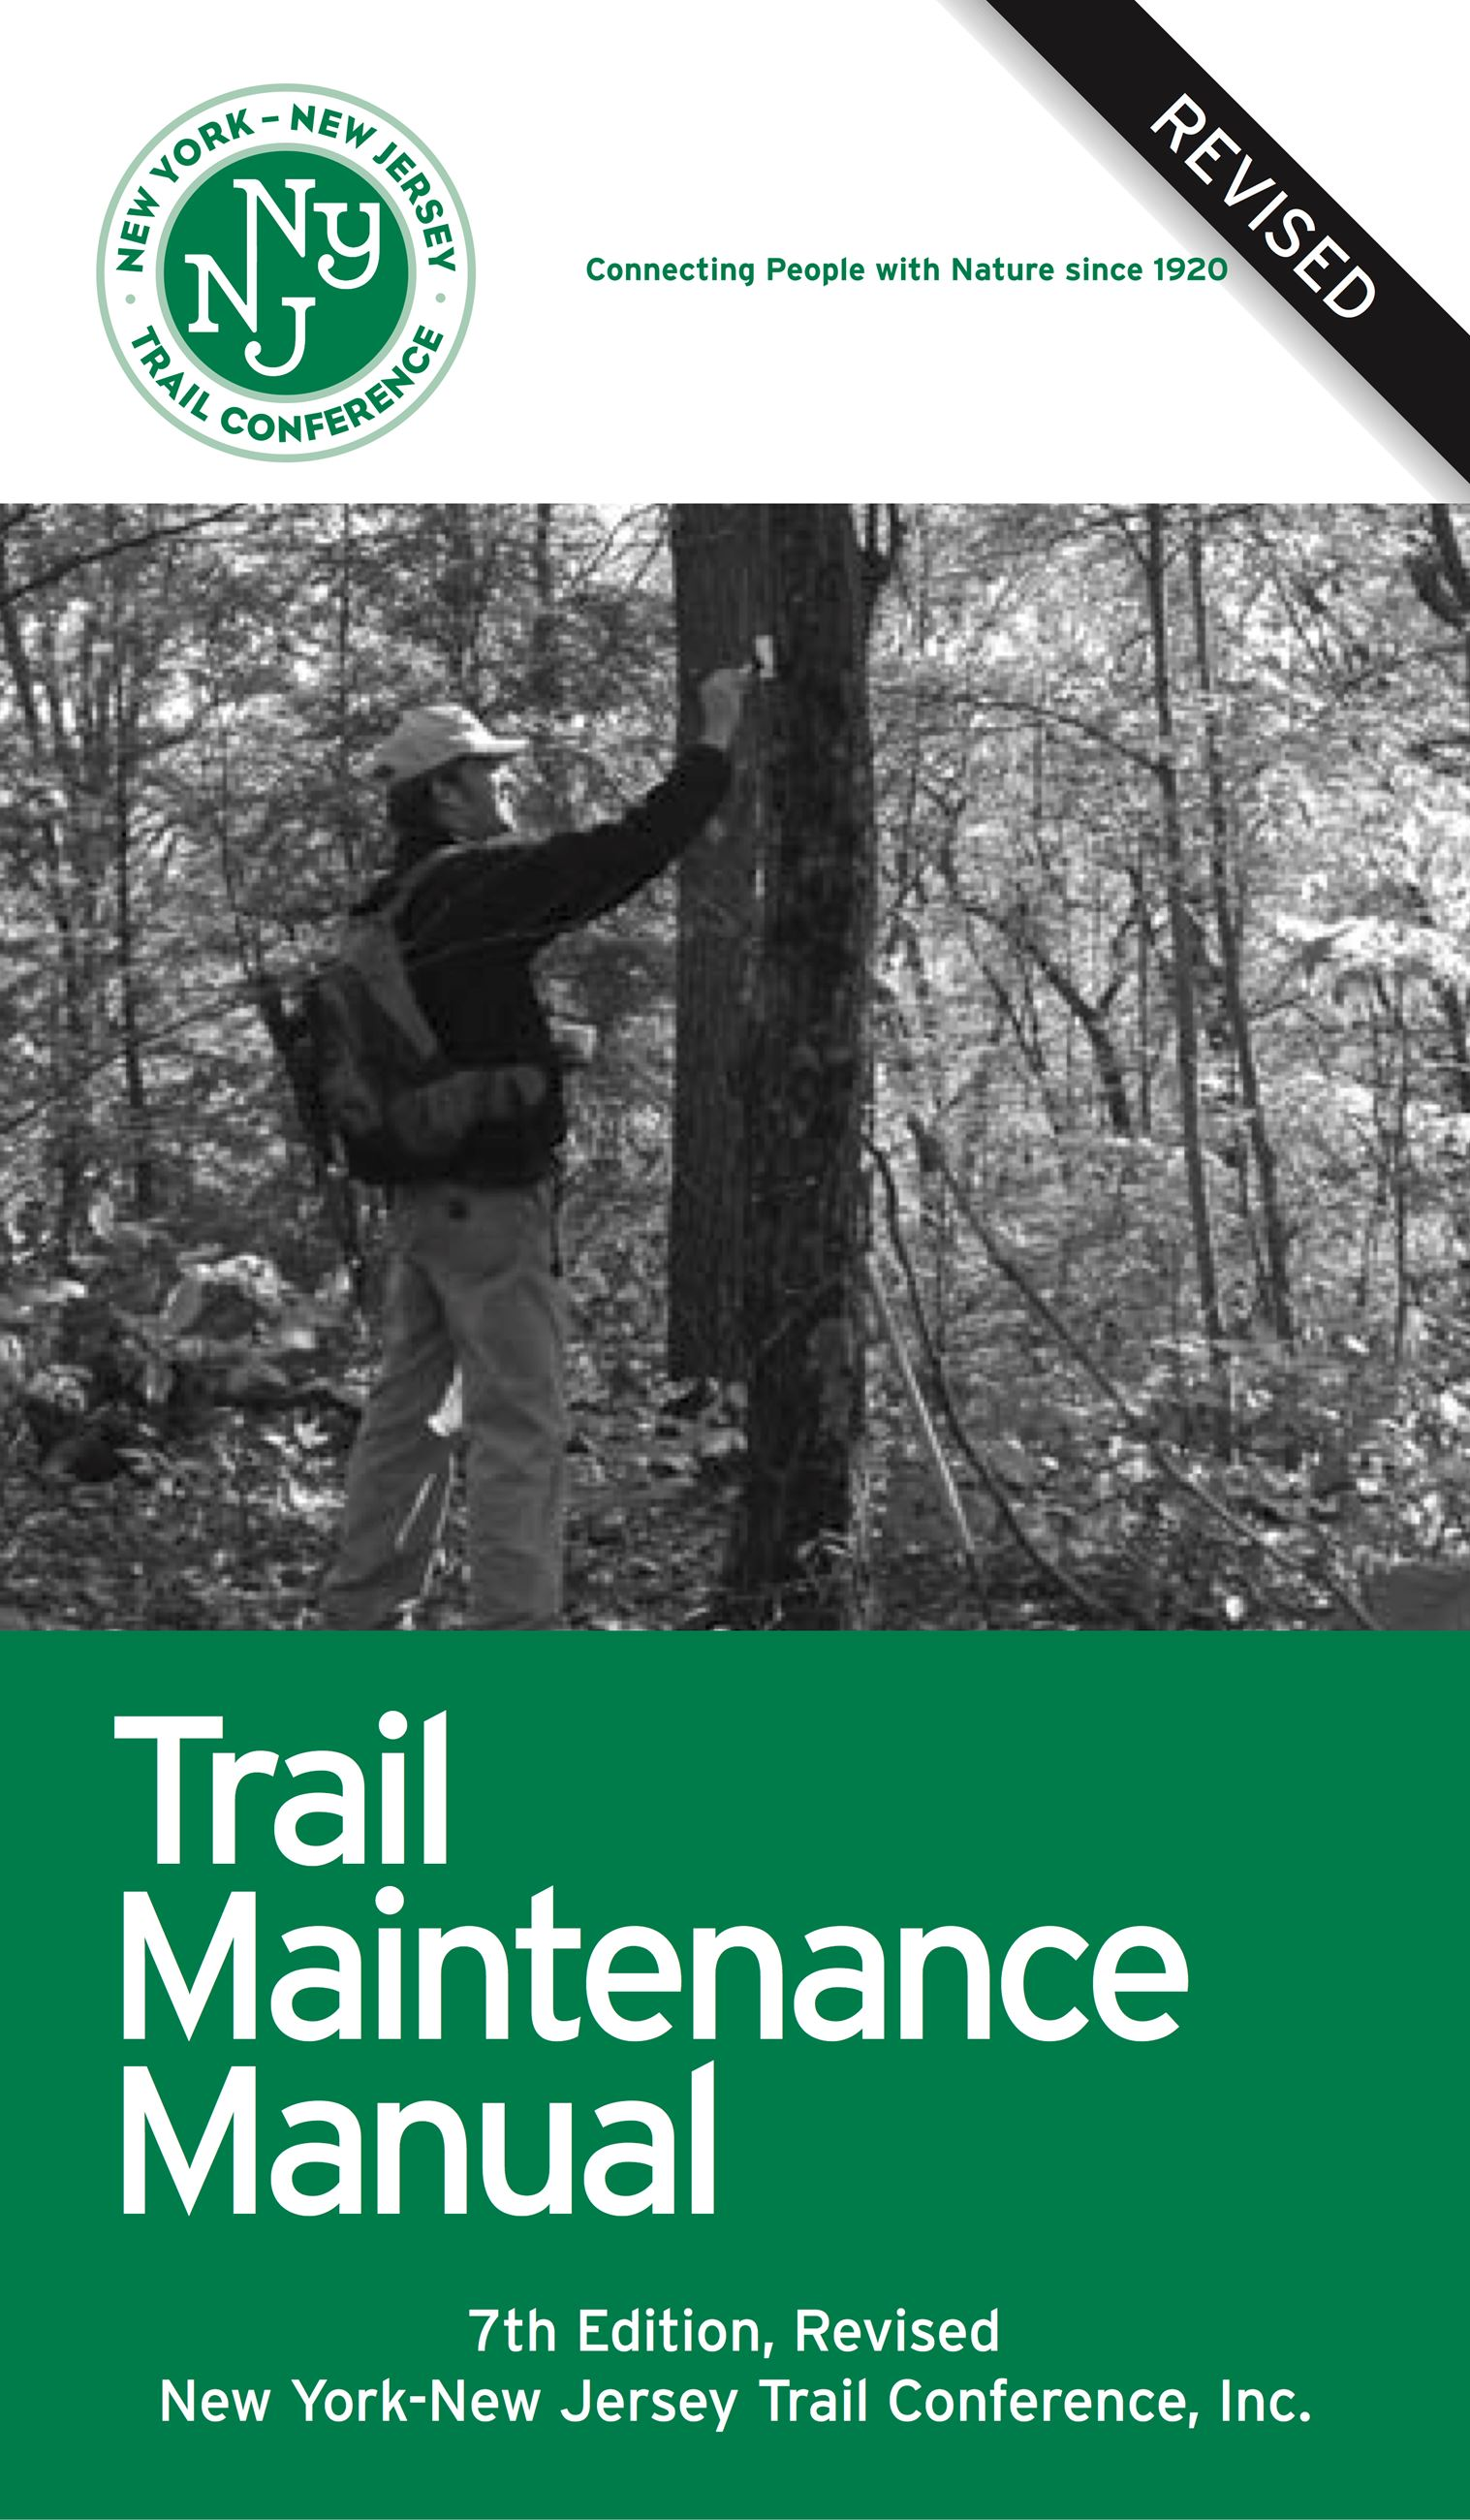 Trail Maintenance Manual Cover